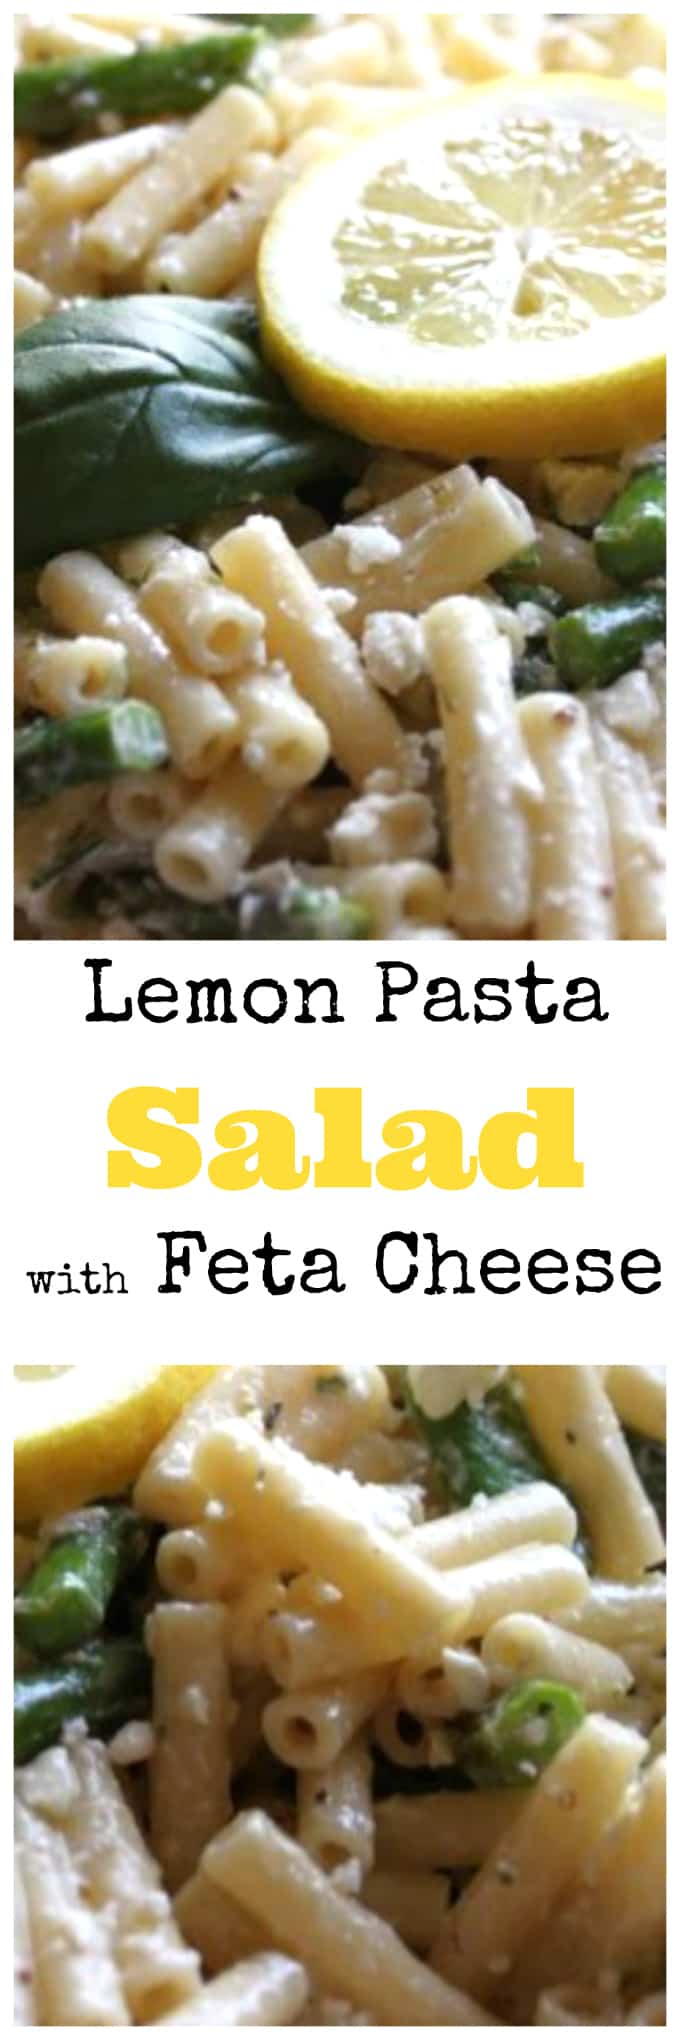 lemon pasta salad with feta cheese @createdbydiane